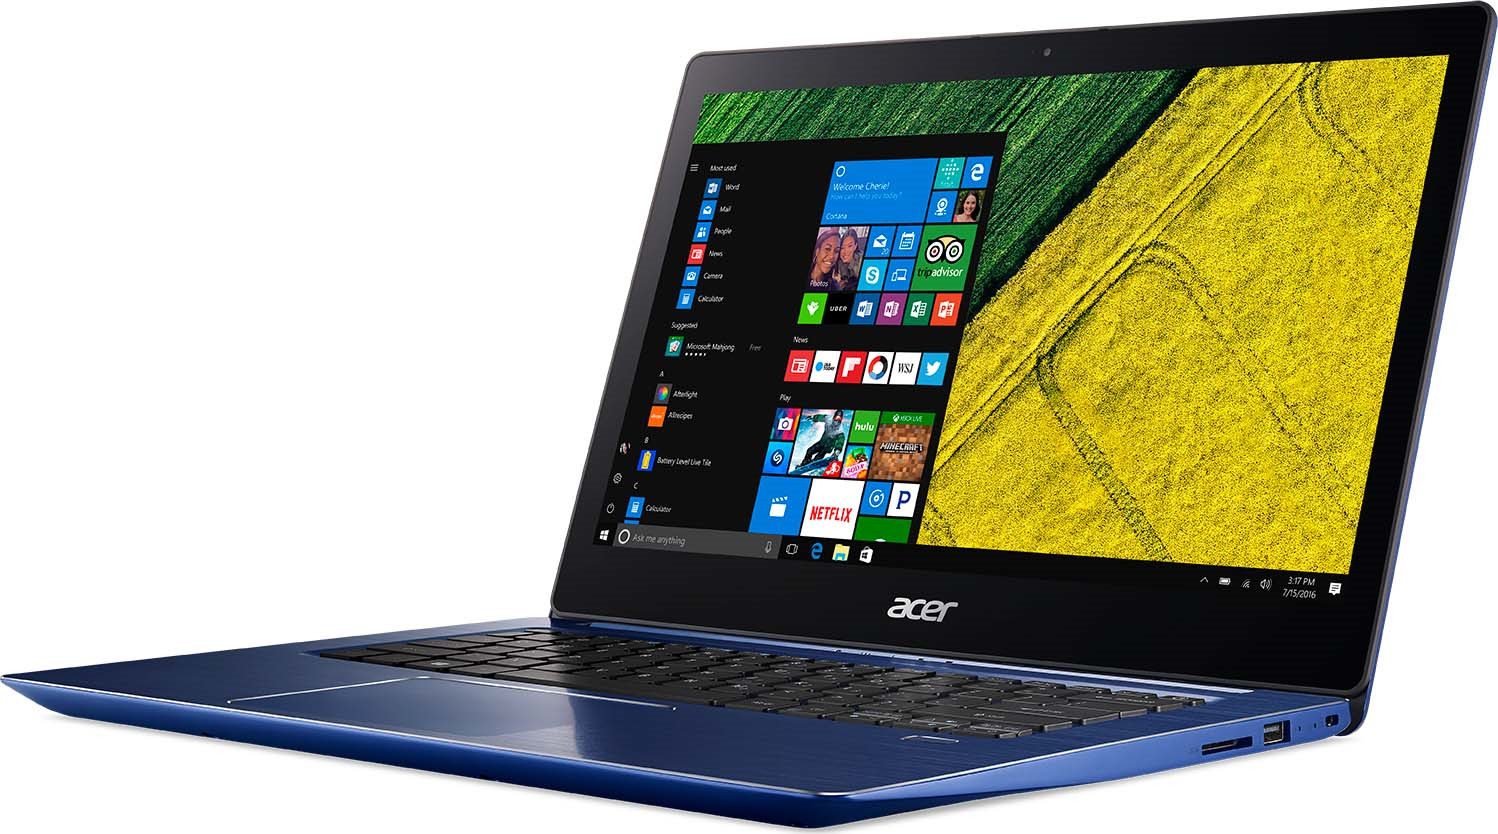 14 Ноутбук Acer Swift 3 SF314-54 NX.GYGER.009, синий ноутбук acer swift 3 sf314 54 nx gyger 009 14 синий